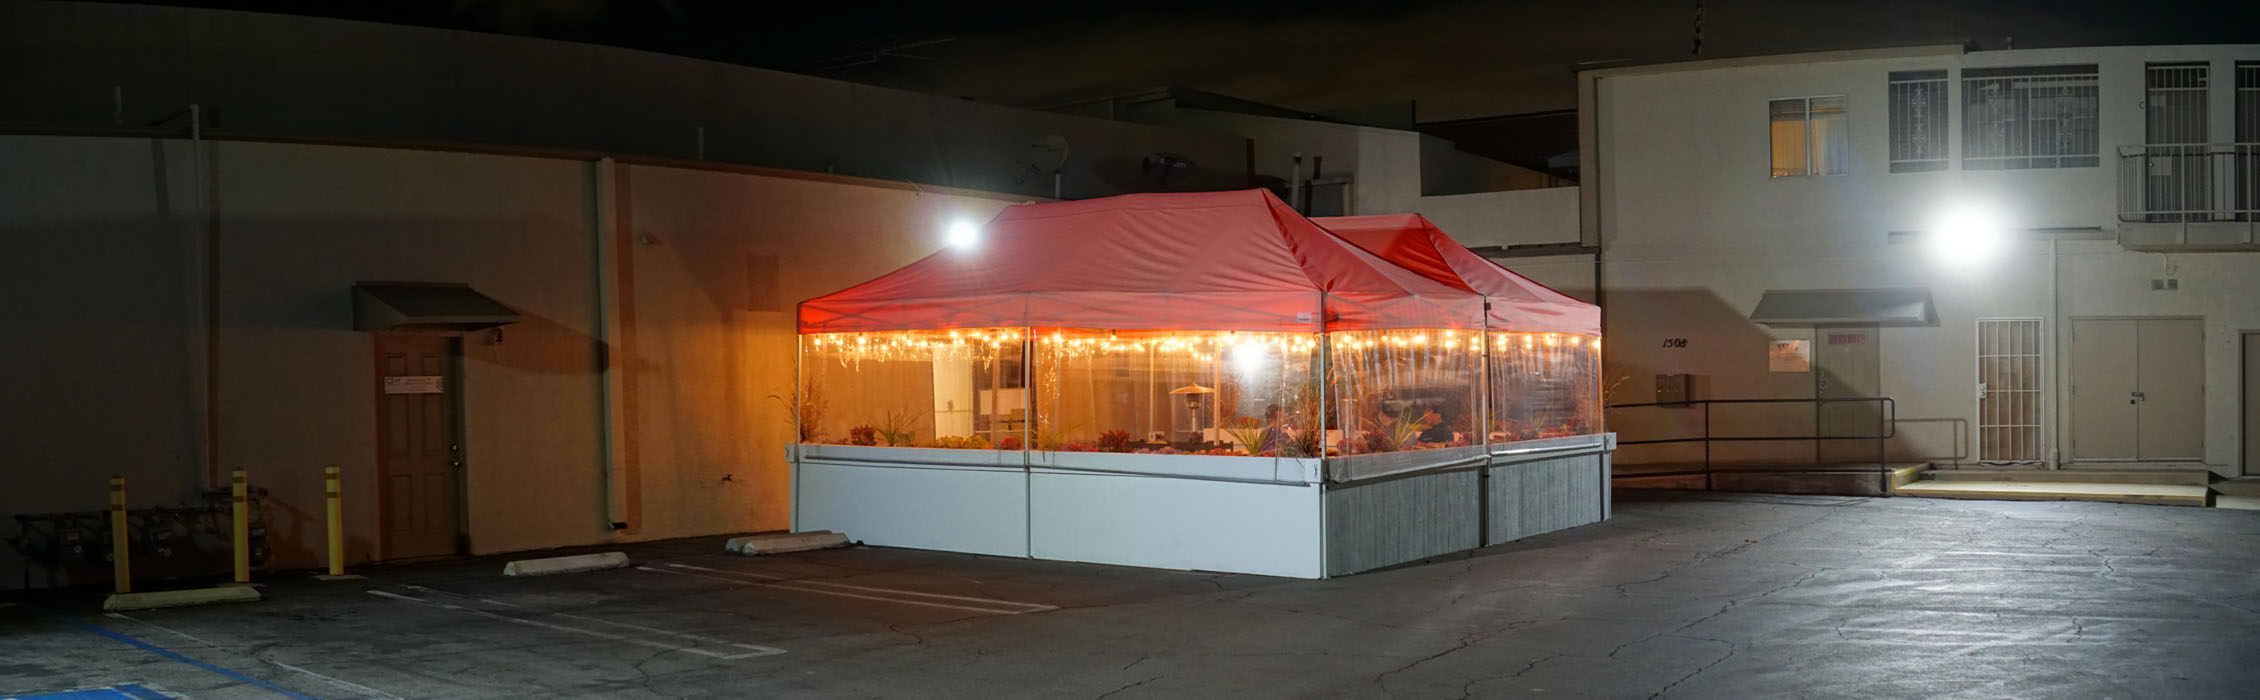 Tendon Tempura Carlos Jr Outdoor Dining Tent